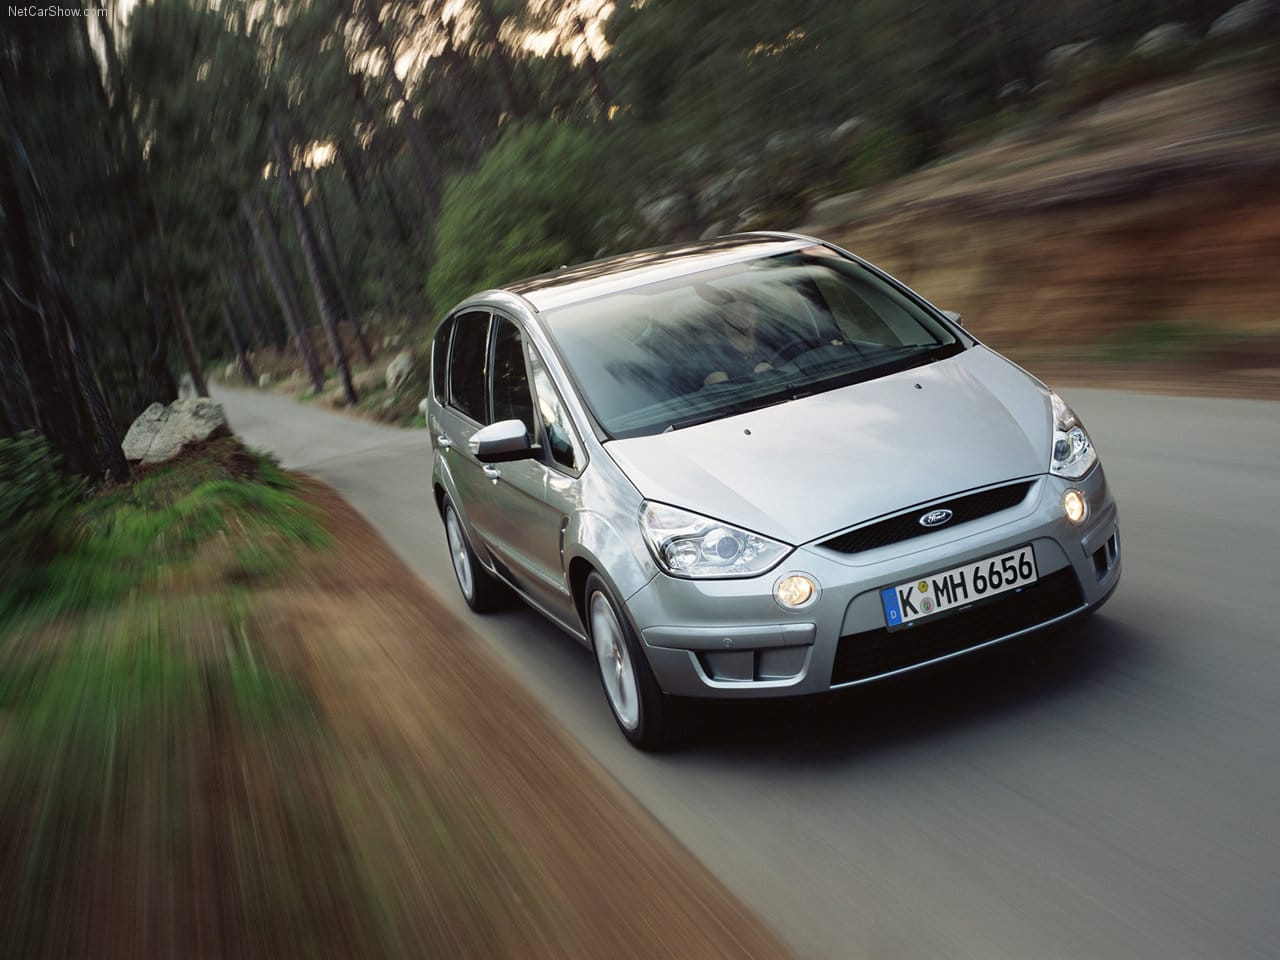 Ford S-Max, Ford, S-Max, Galaxy, people carrier, family car, bargain car, big car, practical car, car sales, motoring, automotive, estate car, kinetic design, David Hilton, ebay, ebay motors, autotrader